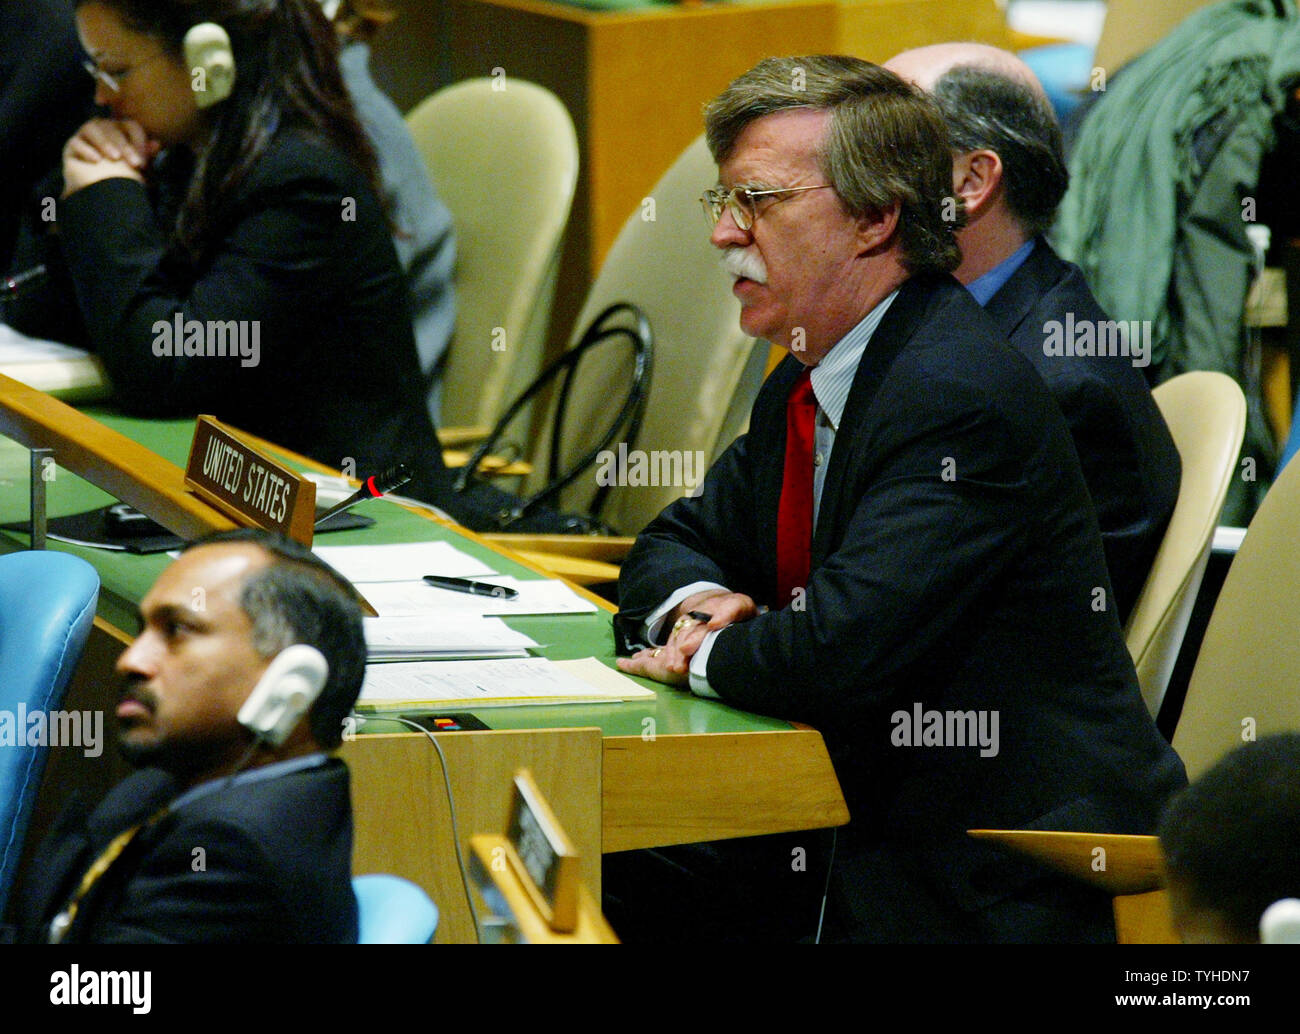 United State's ambassador to the United Nations John Bolton discusses his vote against the creation of a new United Nations Human Rights Council during the General Assembly meeting at the UN on March 15, 2006 in New York City. The resolution passed by 170 to 4 votes. (UPI photo/Monika Graff) Stock Photo